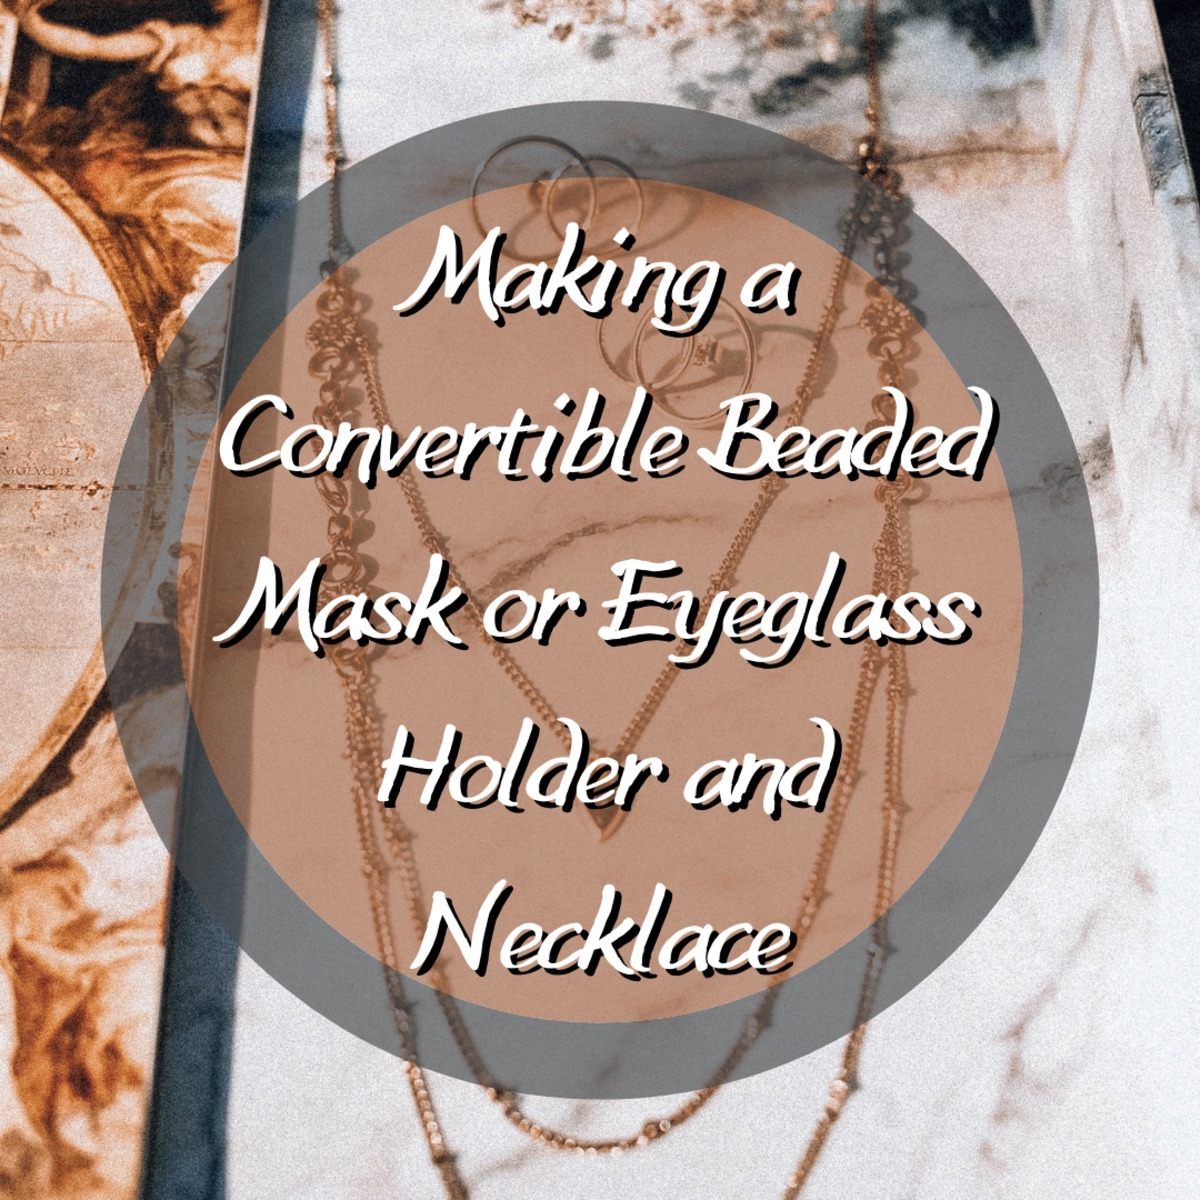 This jewelry tutorial will teach you how to create your own beaded necklace that doubles as an eyeglass or mask holder.